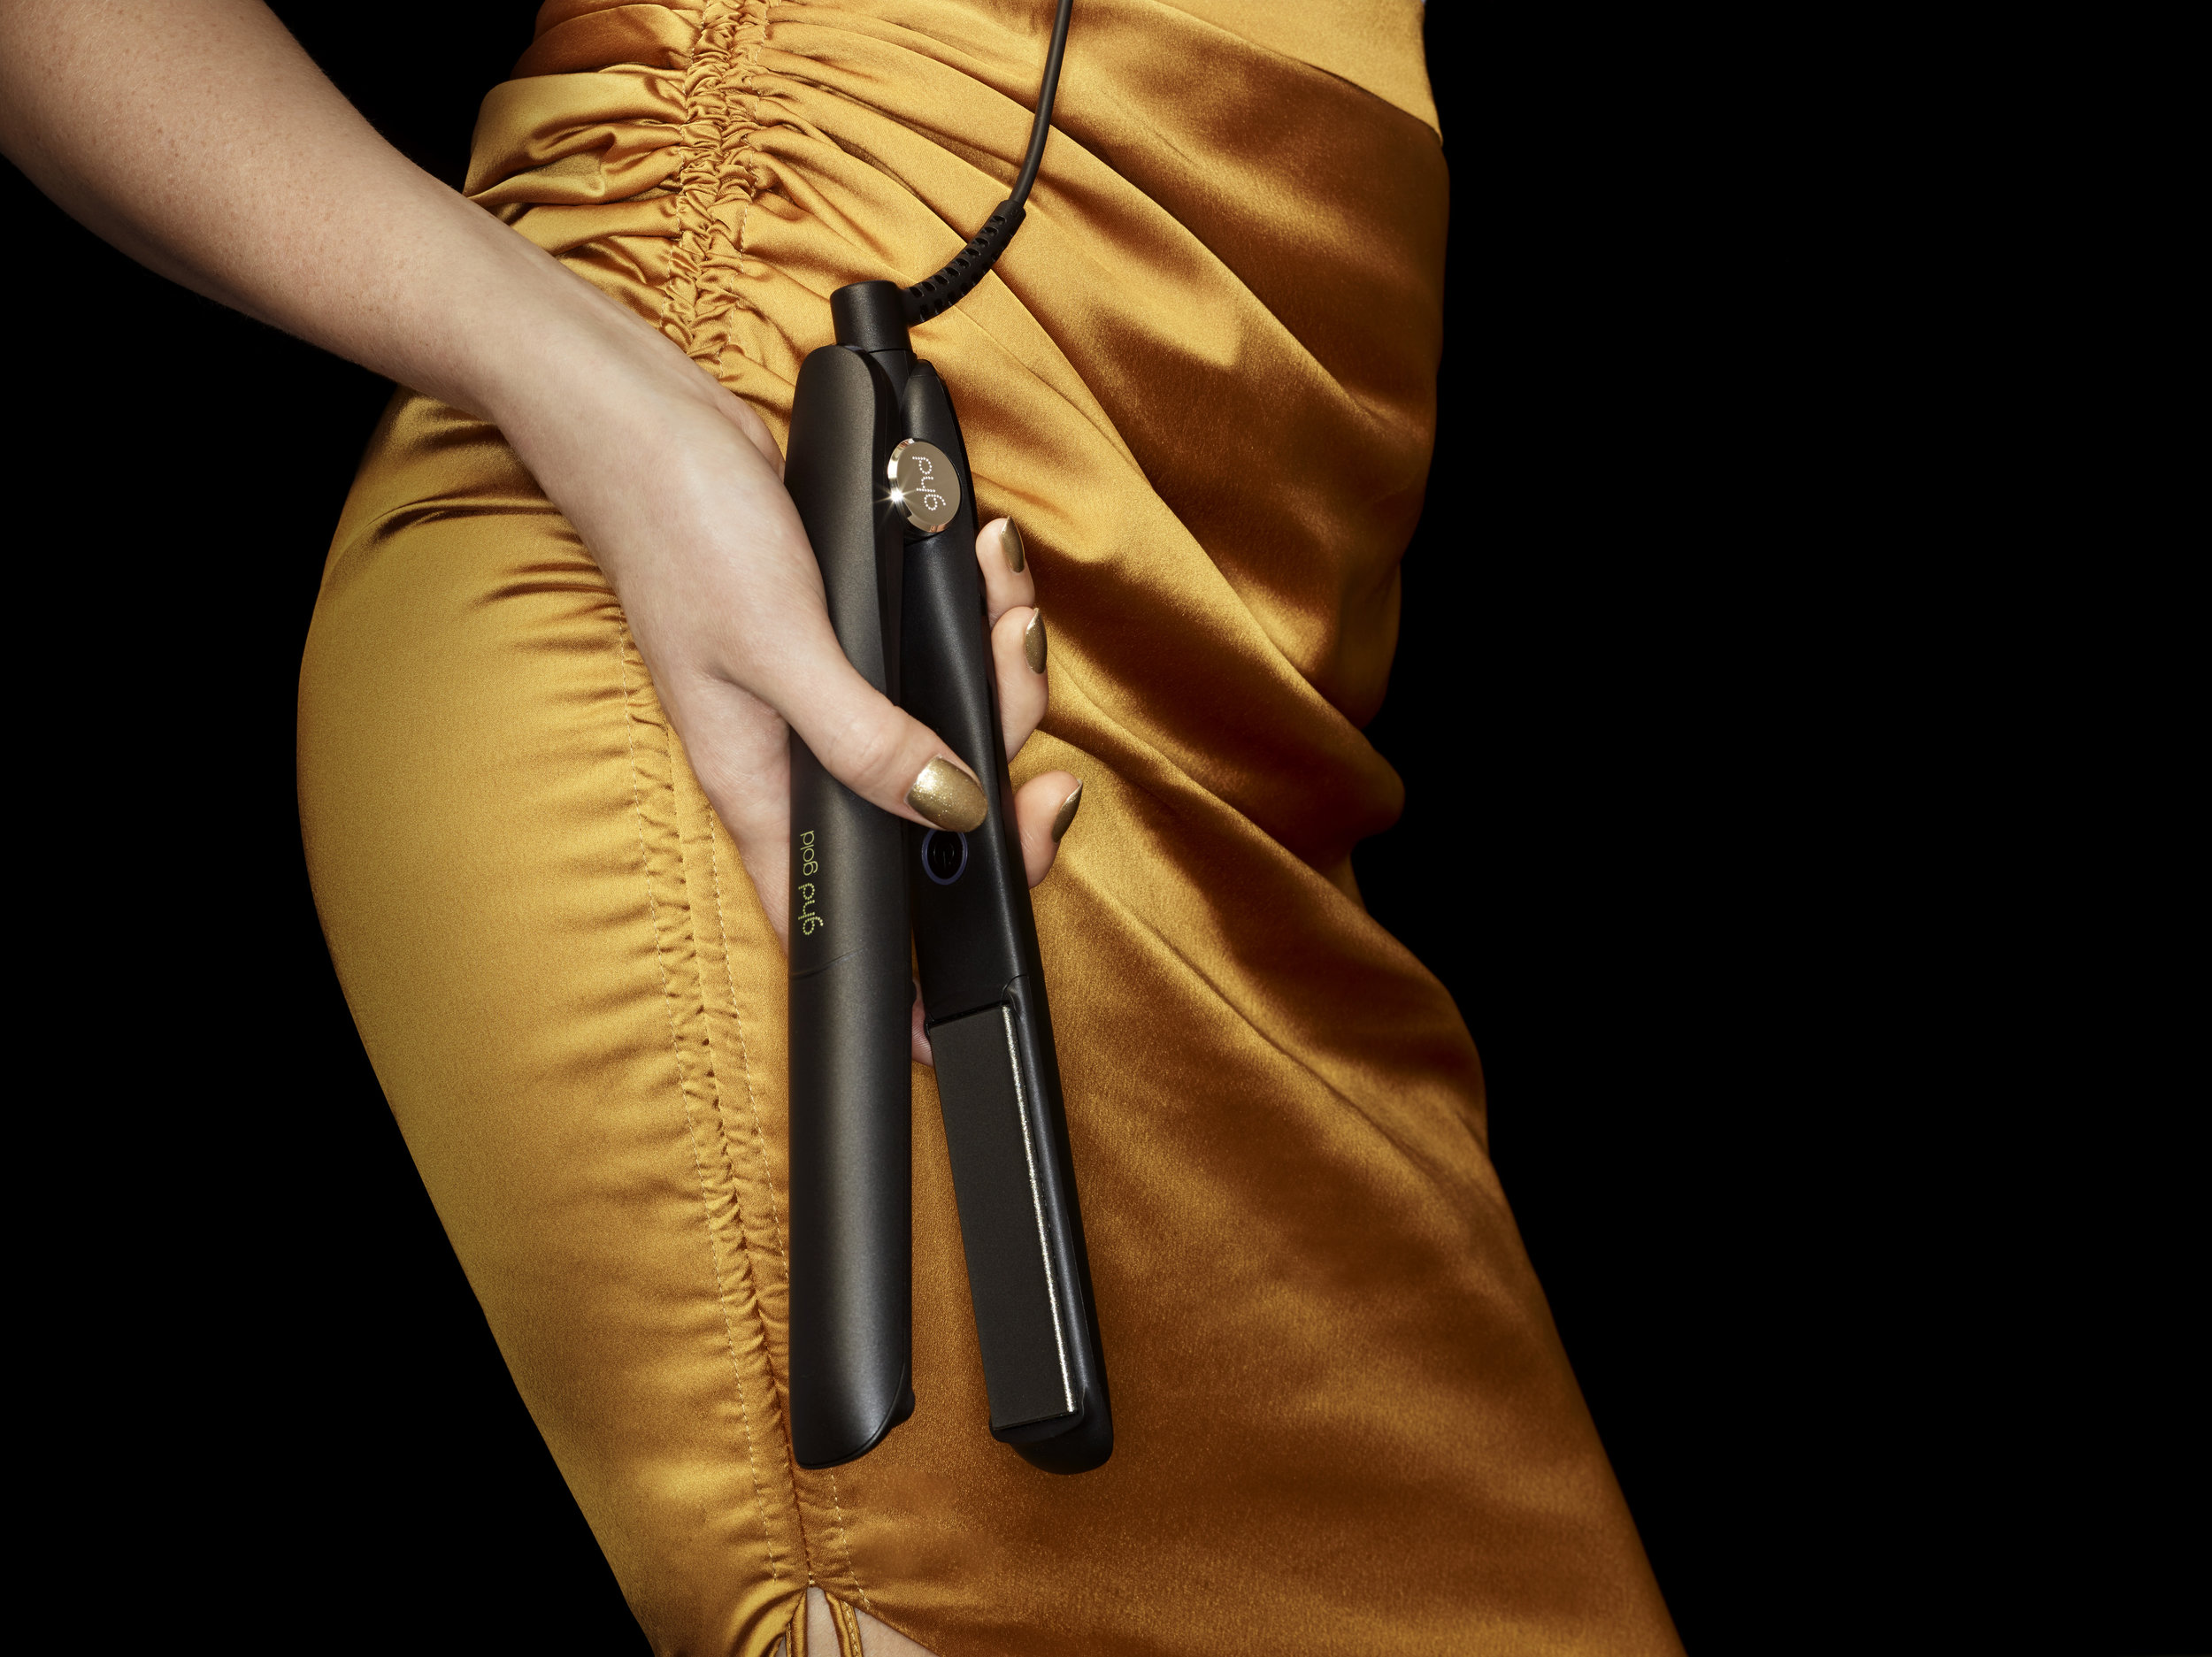 Rouche_GHD_Gold2_80751.jpg